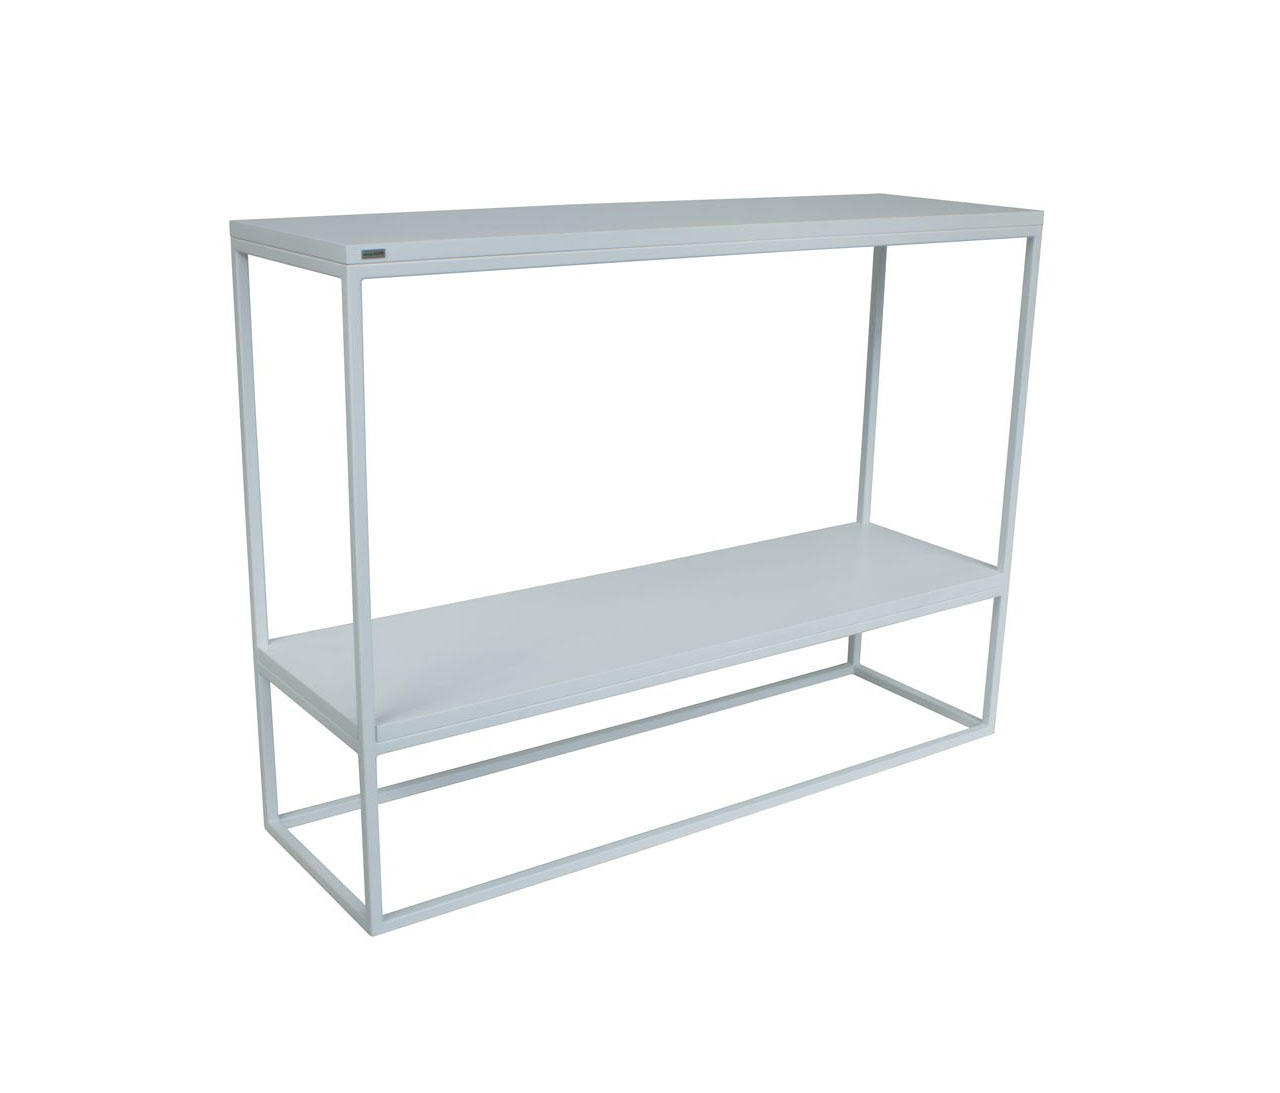 SKINNY TABLAR Console tables from take me HOME Architonic